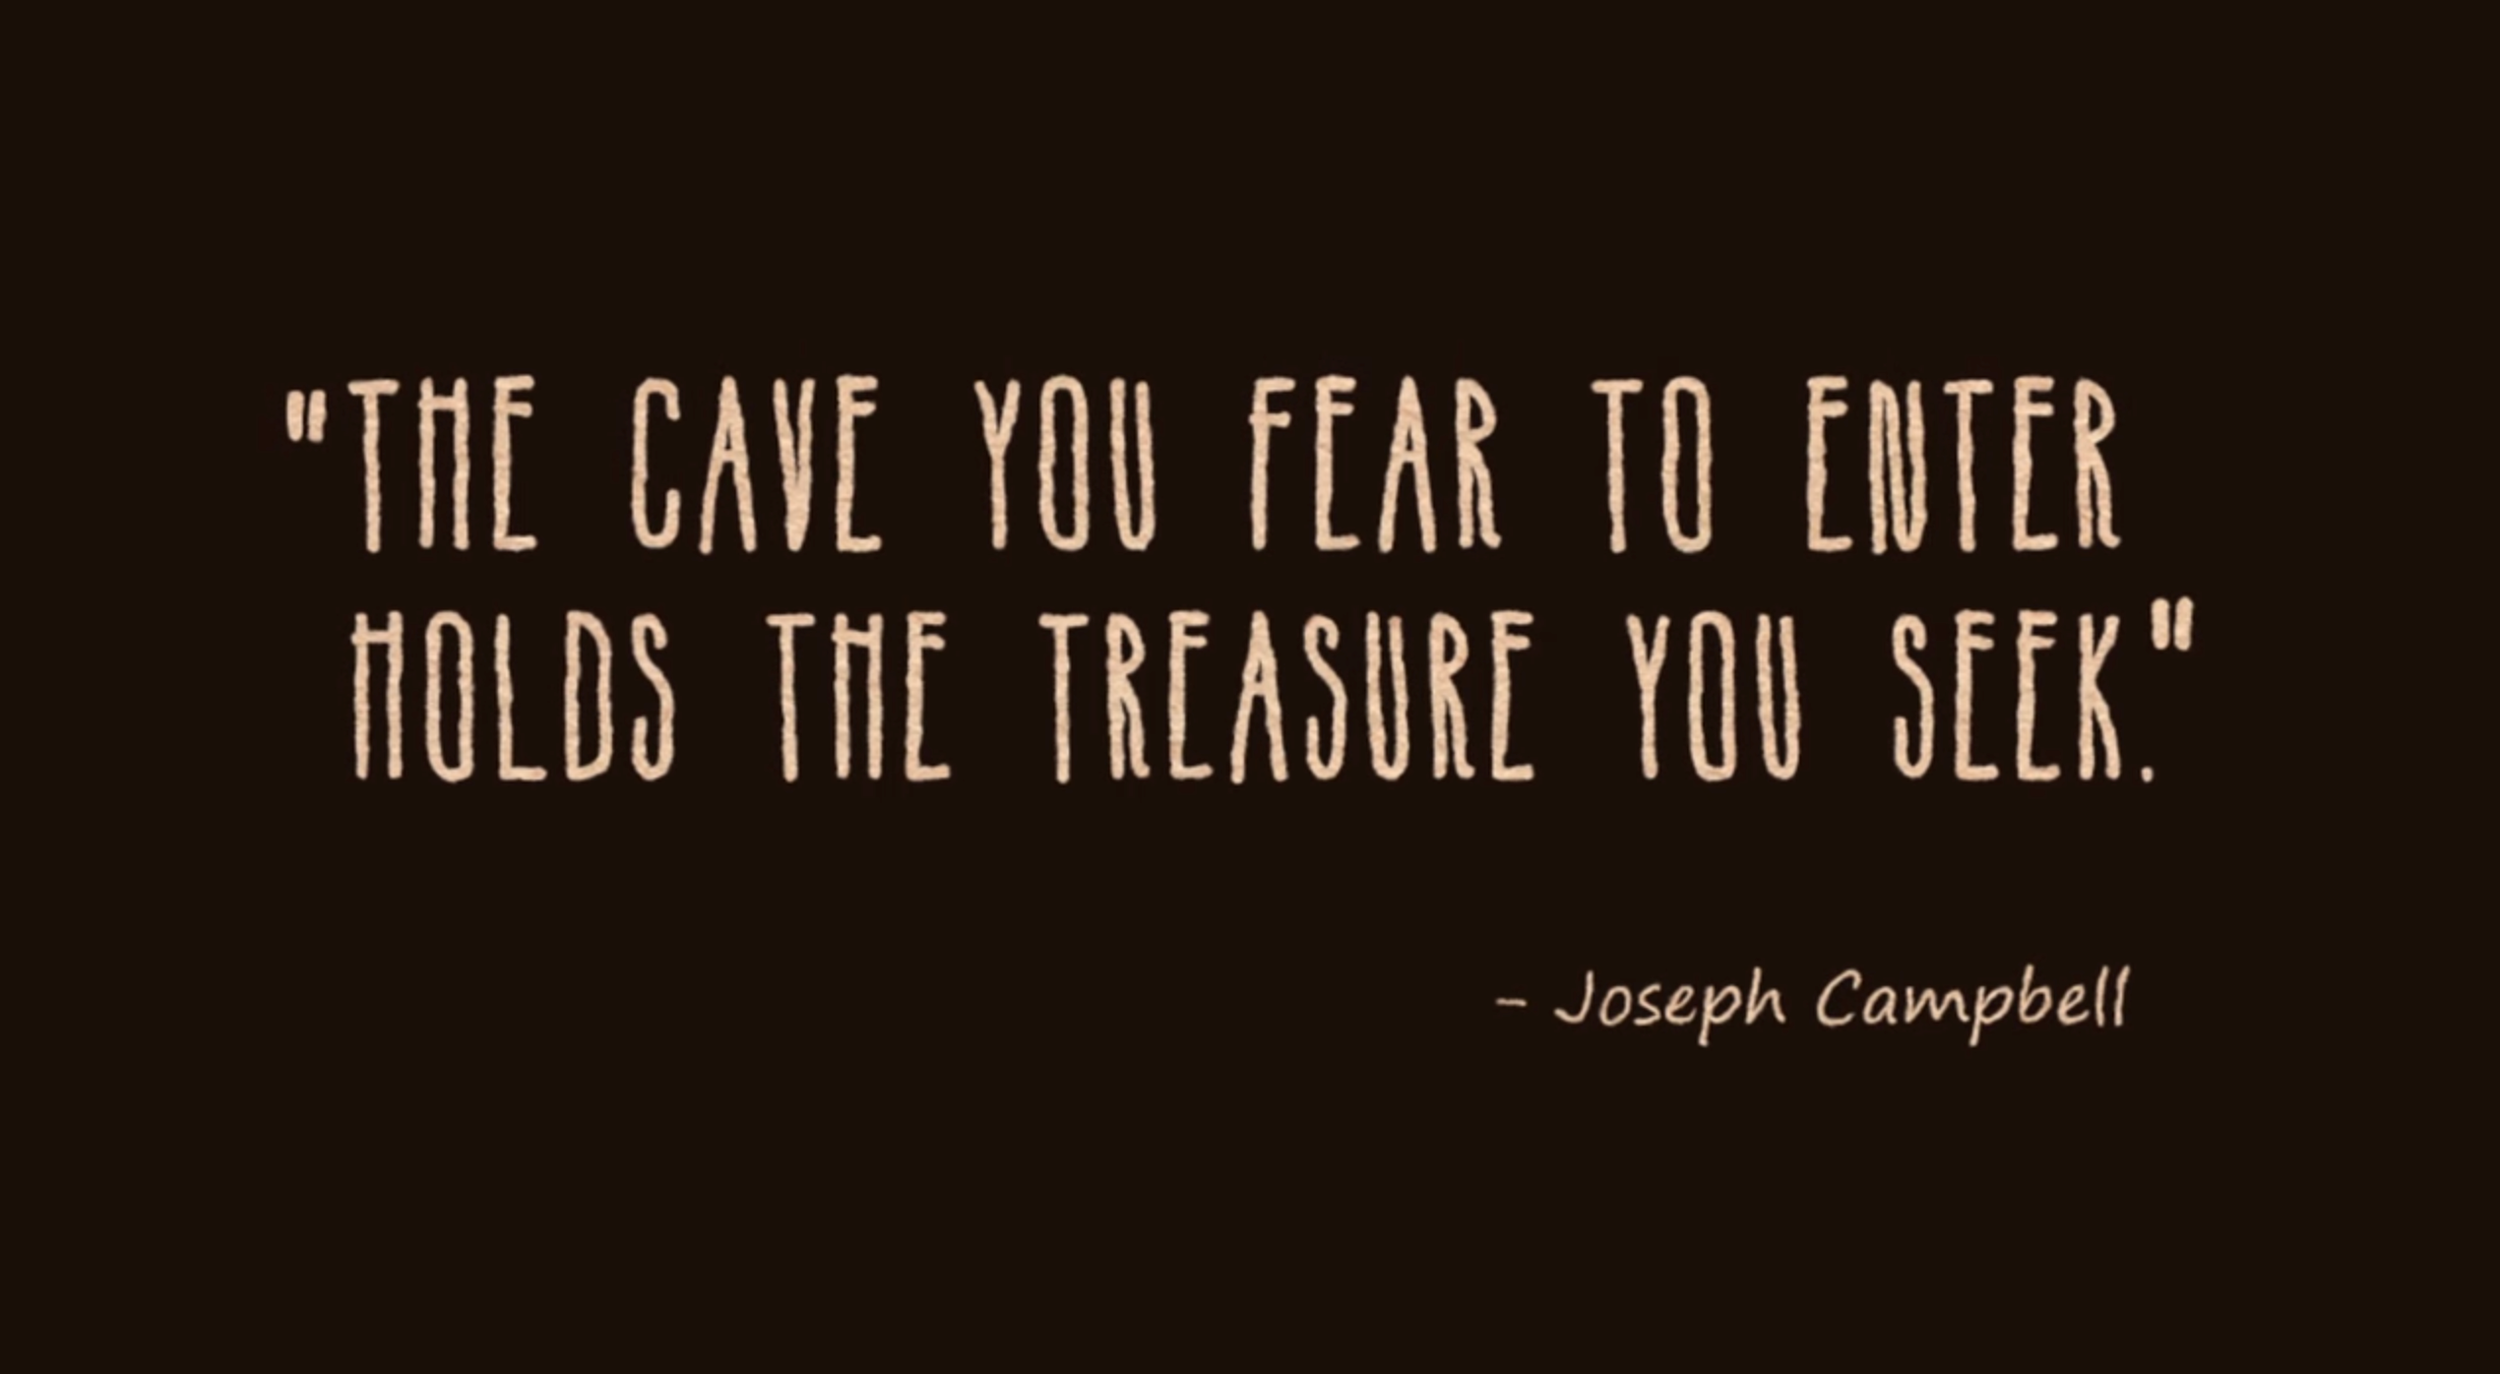 Animation Outlines 11 Stages of Joseph Campbell's Monomyth